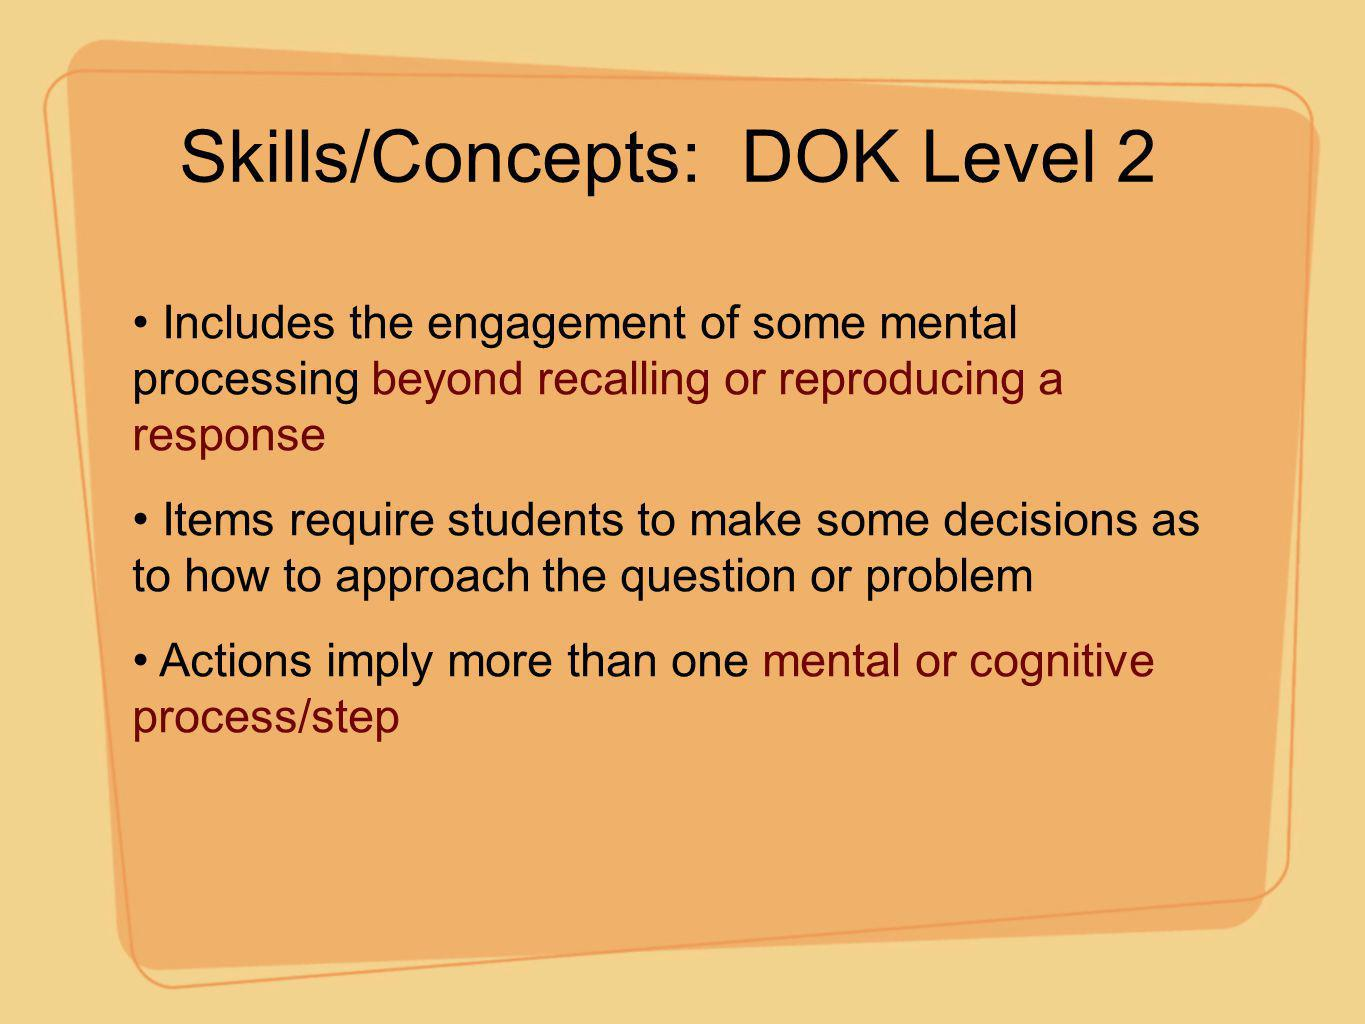 Skills/Concepts: DOK Level 2